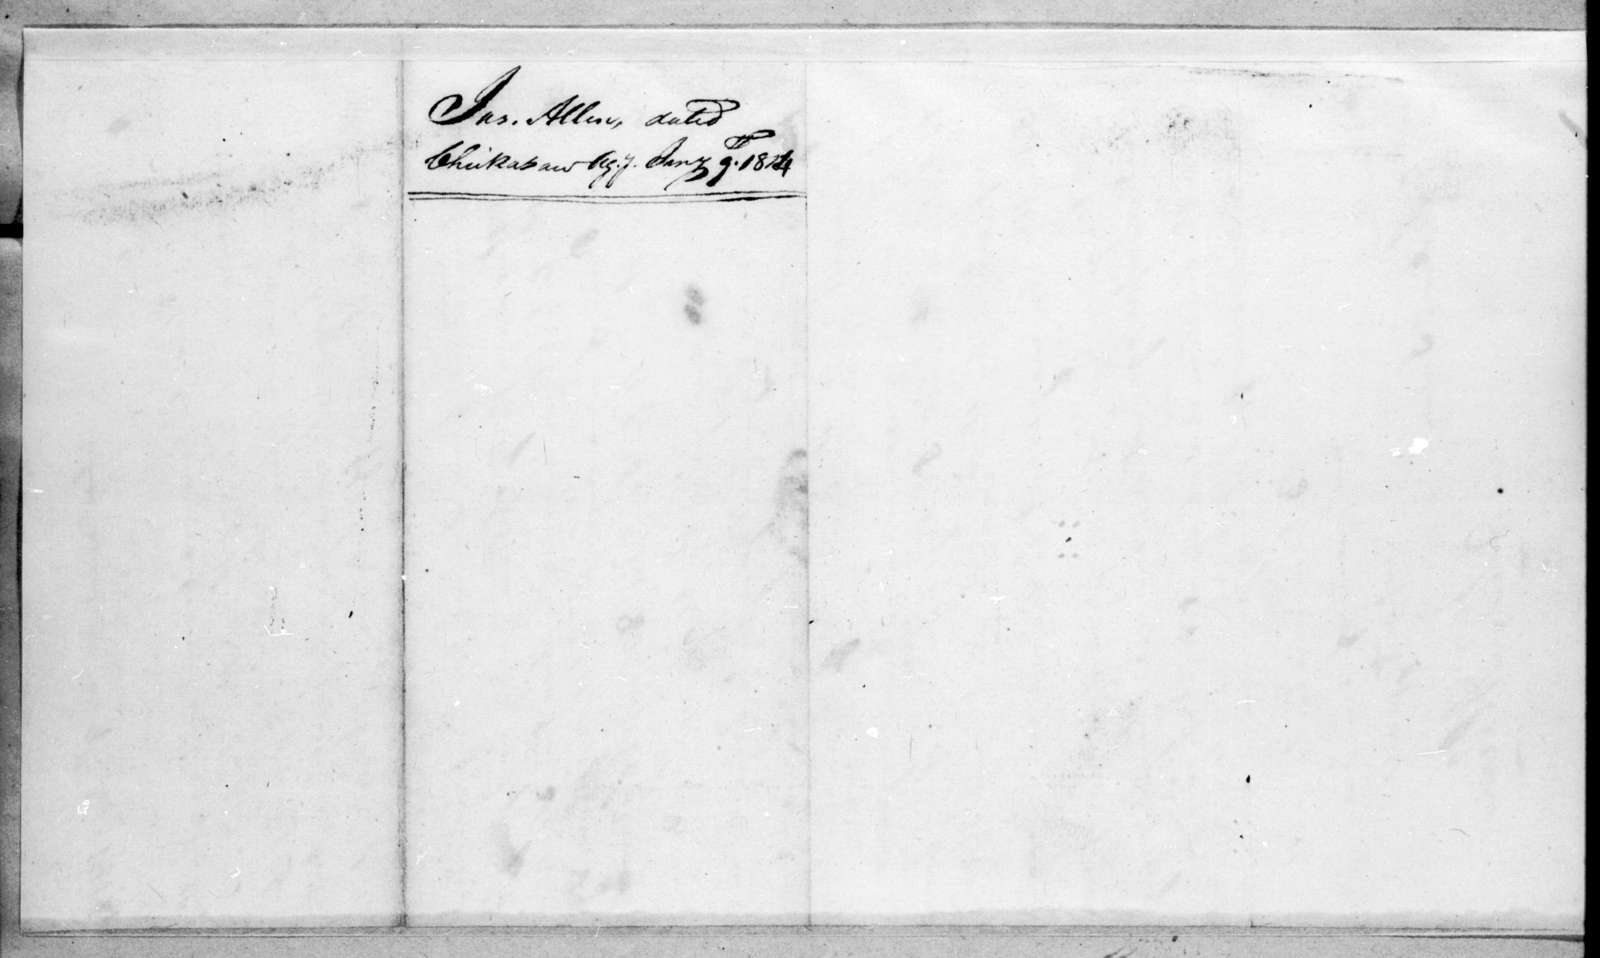 James Allen to Andrew Jackson, January 9, 1814